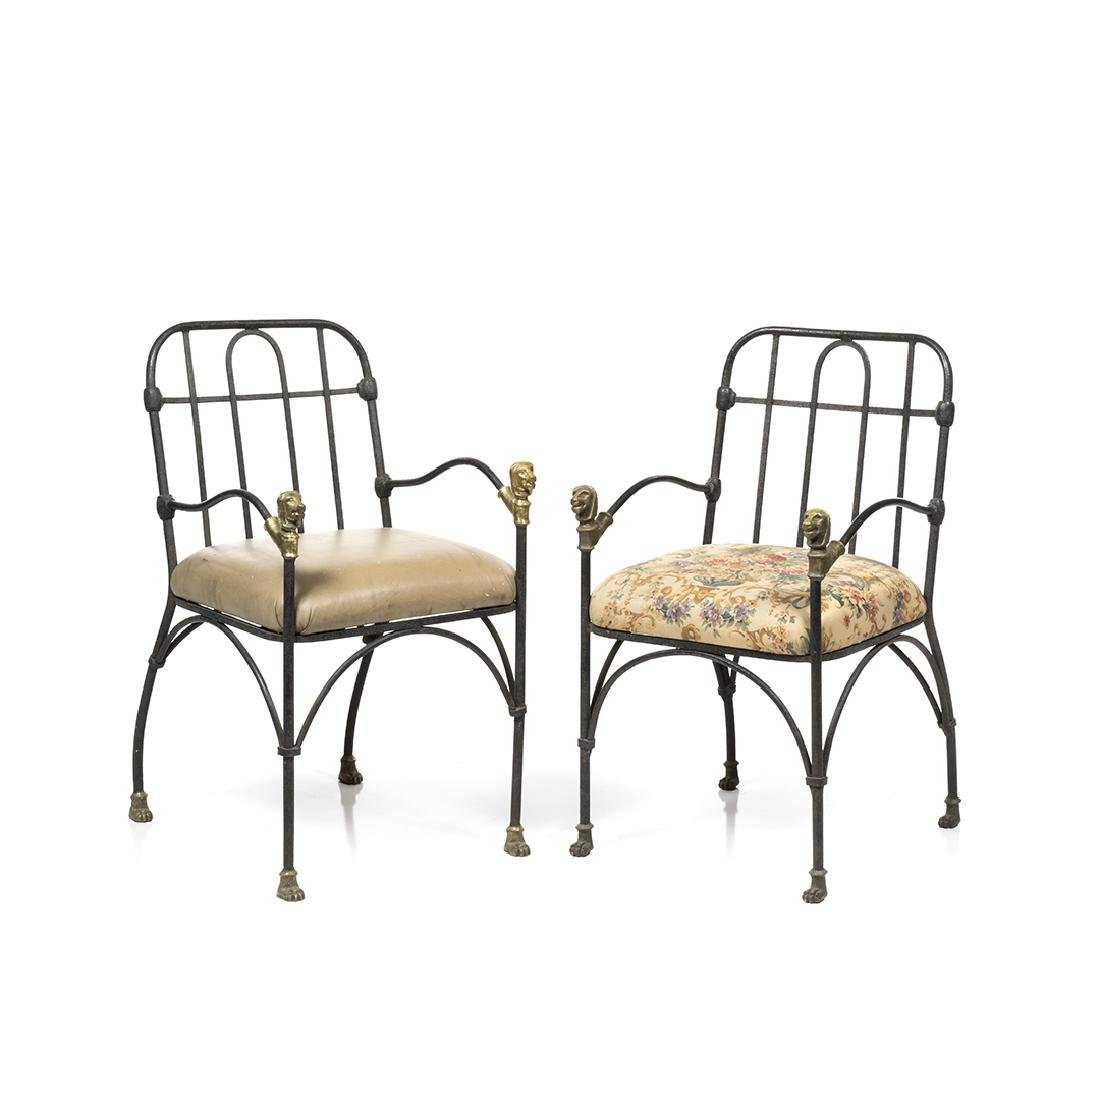 Diego Giacometti Style Chairs (2)